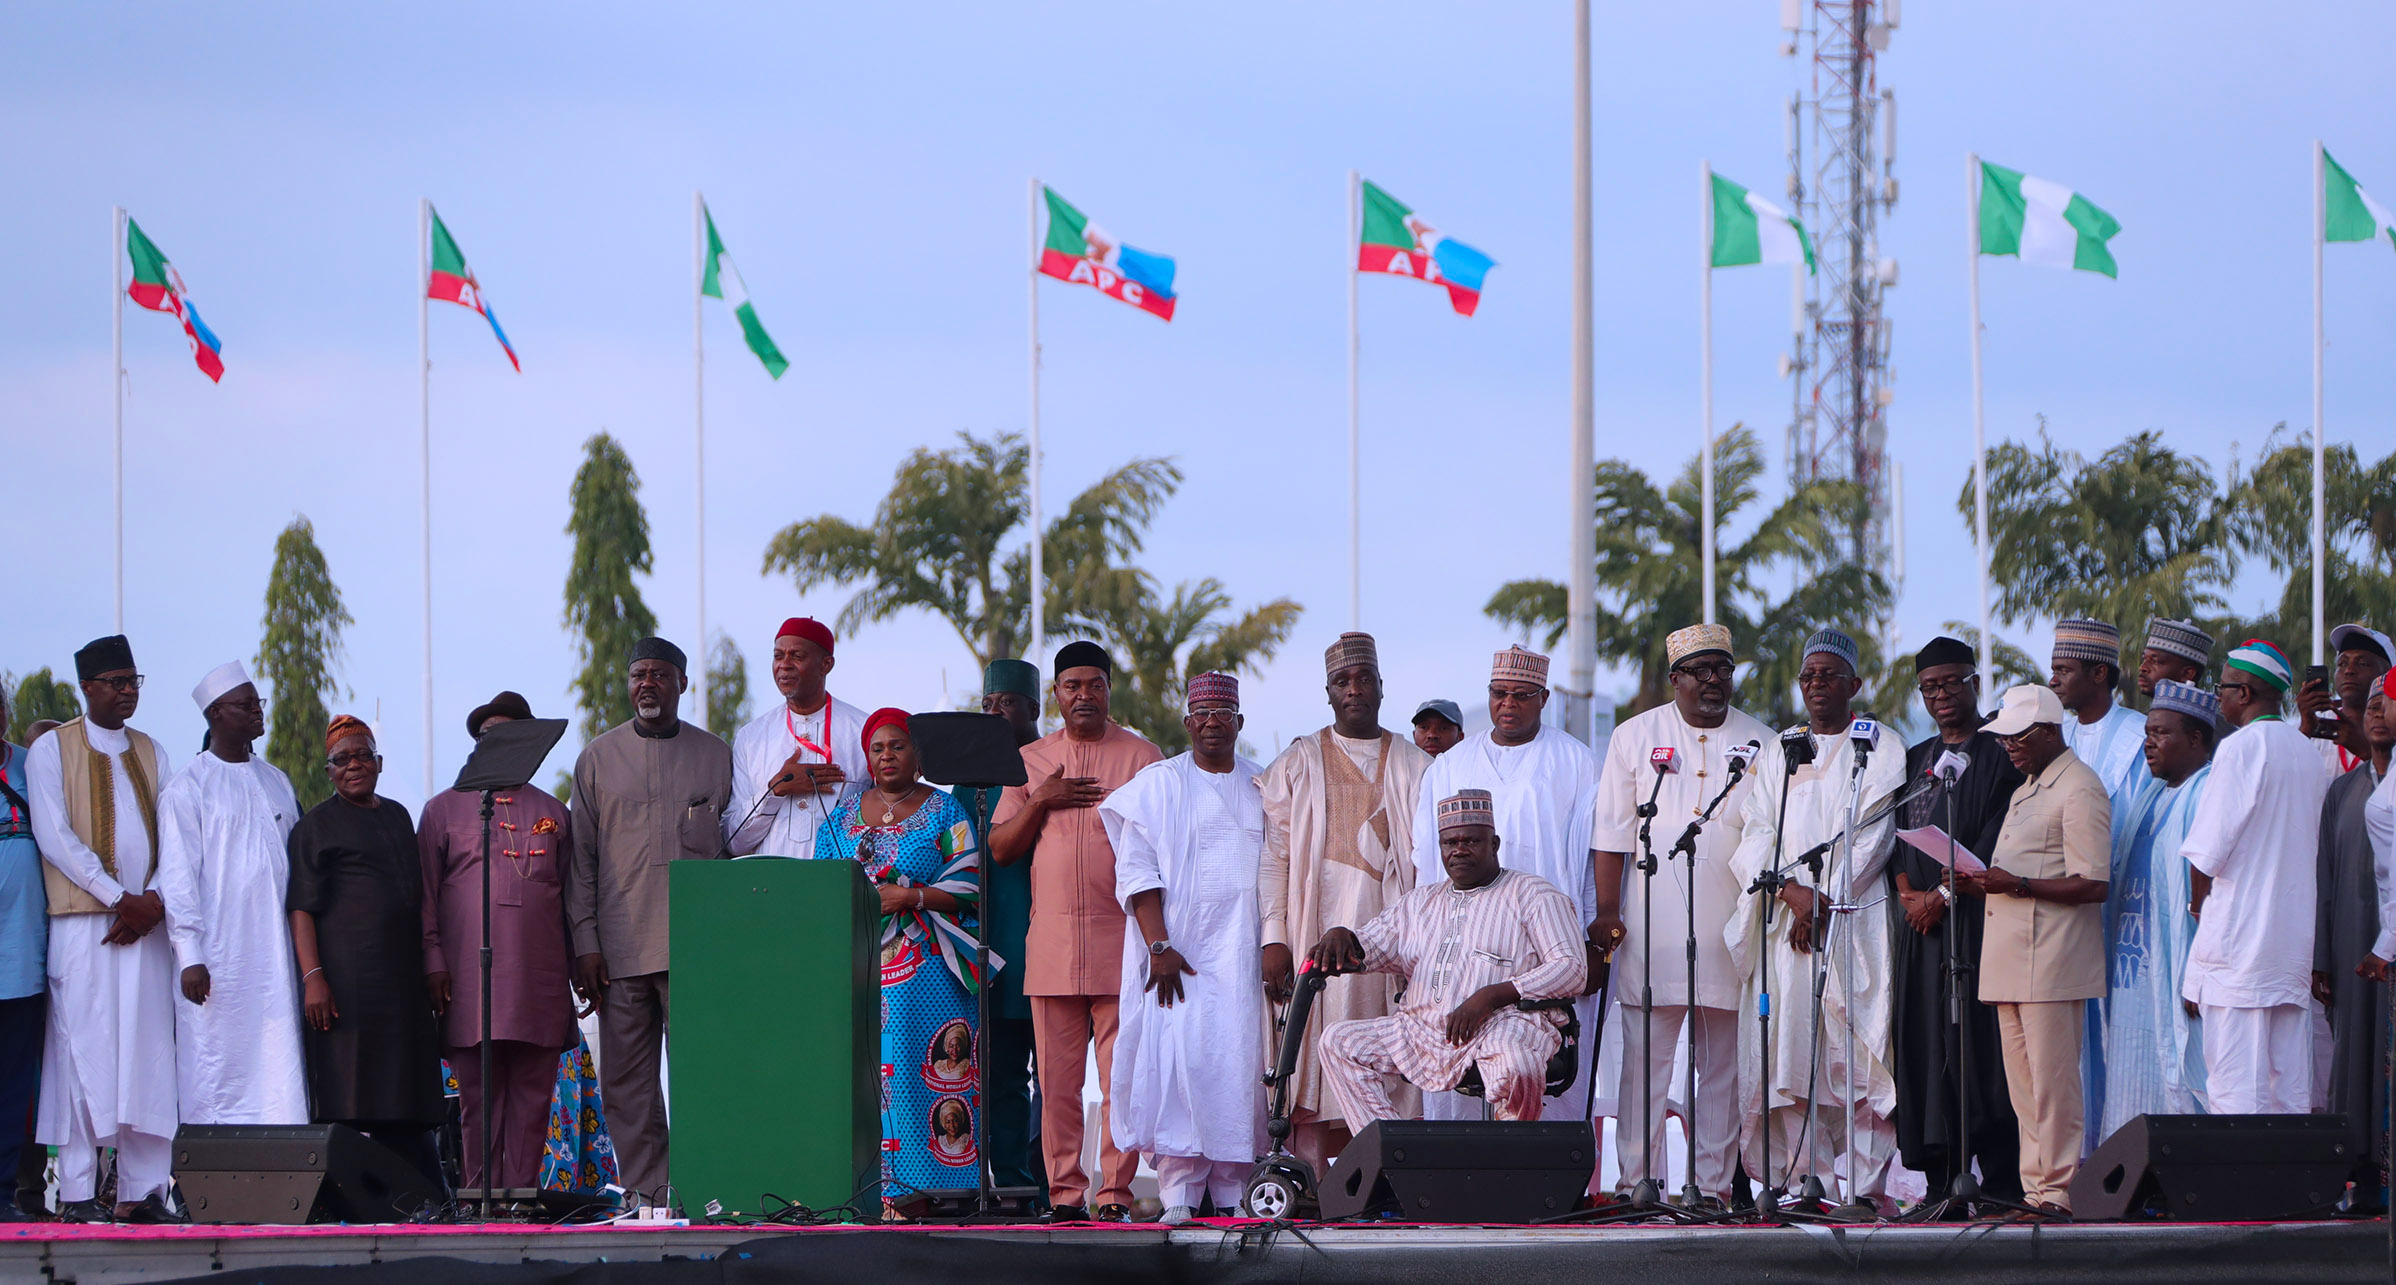 PRESIDENT BUHARI AS APC CONVENTION ENDS 0B. The New APC Chairman Comrade Adams Oshiomhole swears in other New National Working Committee Members as the 2018 APC National Convention comes to a close at the Eagle Square in Abuja. PHOTO; SUNDAY AGHAEZE. JUNE 23 2018.